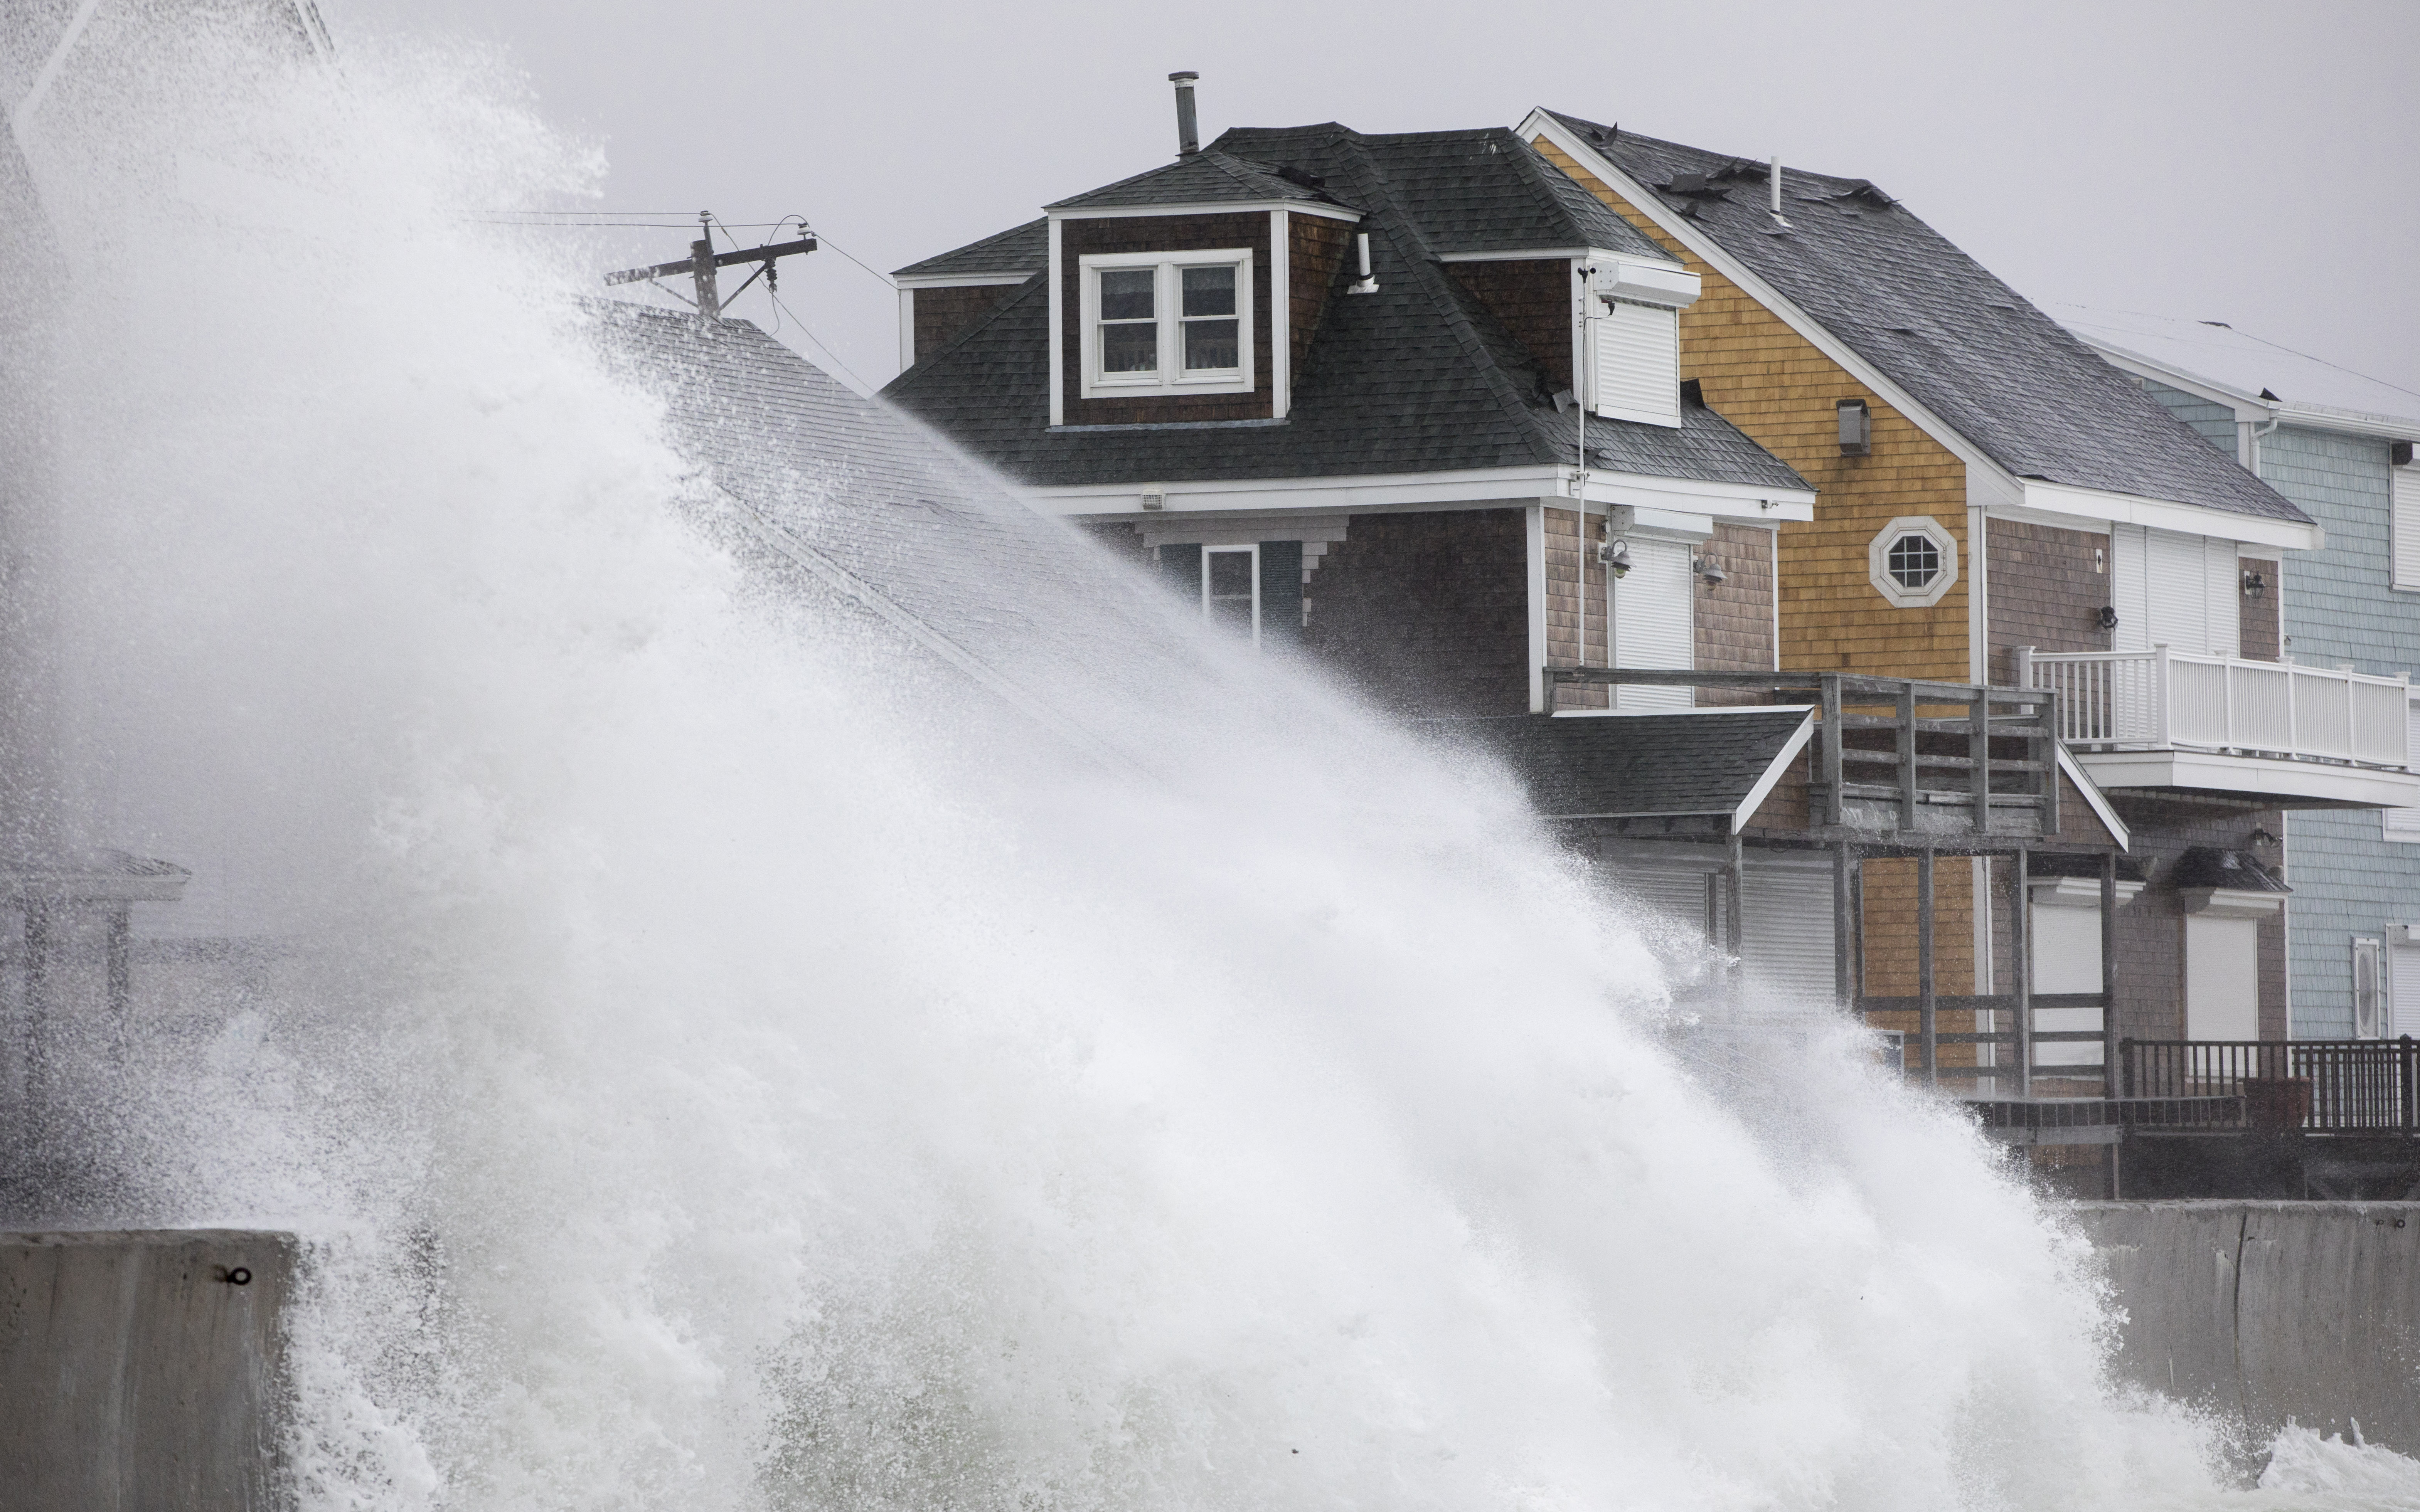 A Powerful Nor'easter Hit the East Coast This Weekend. Here Are 10 Intense Photos from the Storm